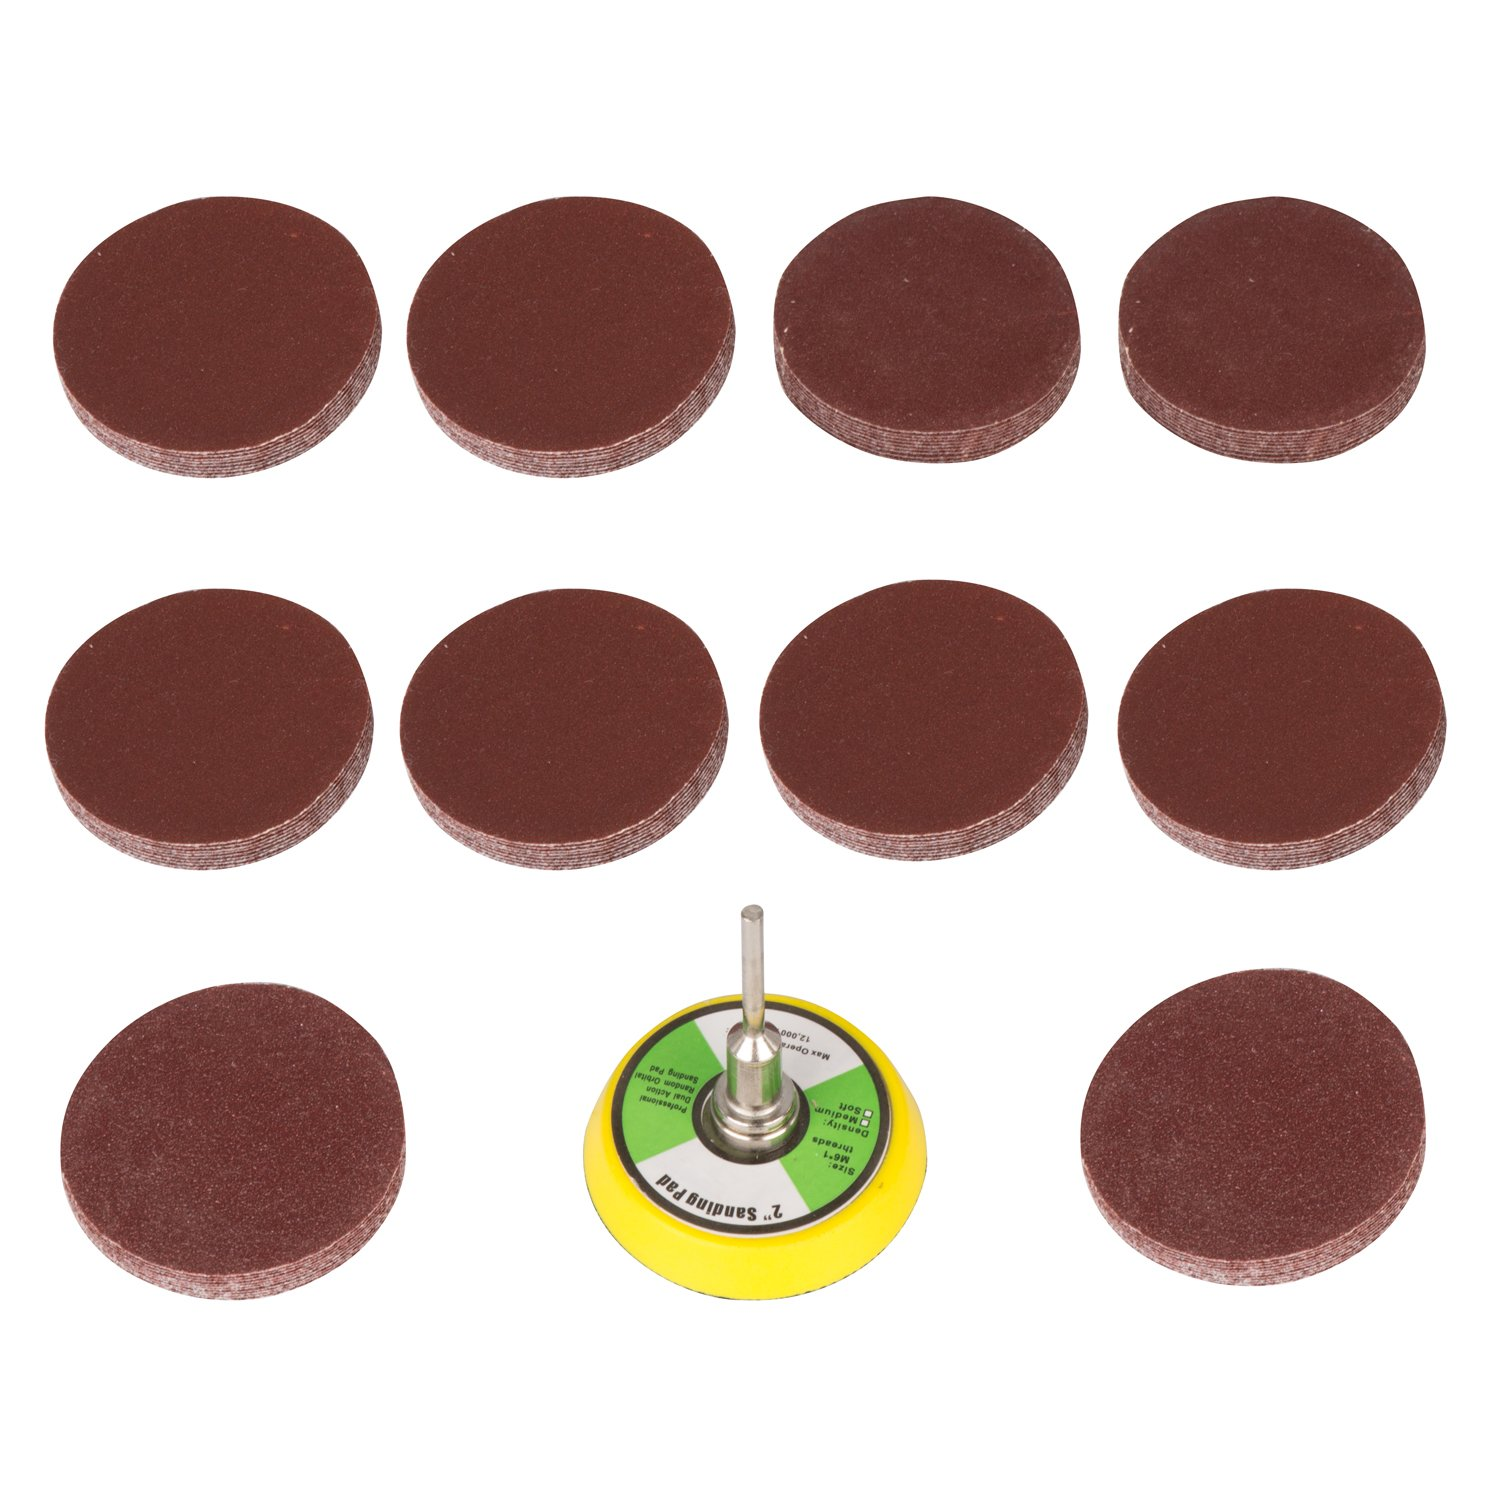 Drill Warehouse 100Pcs 2 inch 60-2000 Grit Dremel Sanding Discs Pad Kit, M6 Backer Plate, with Backer Plate 1/4Inch Shank, for Drill Grinder Rotary Tools